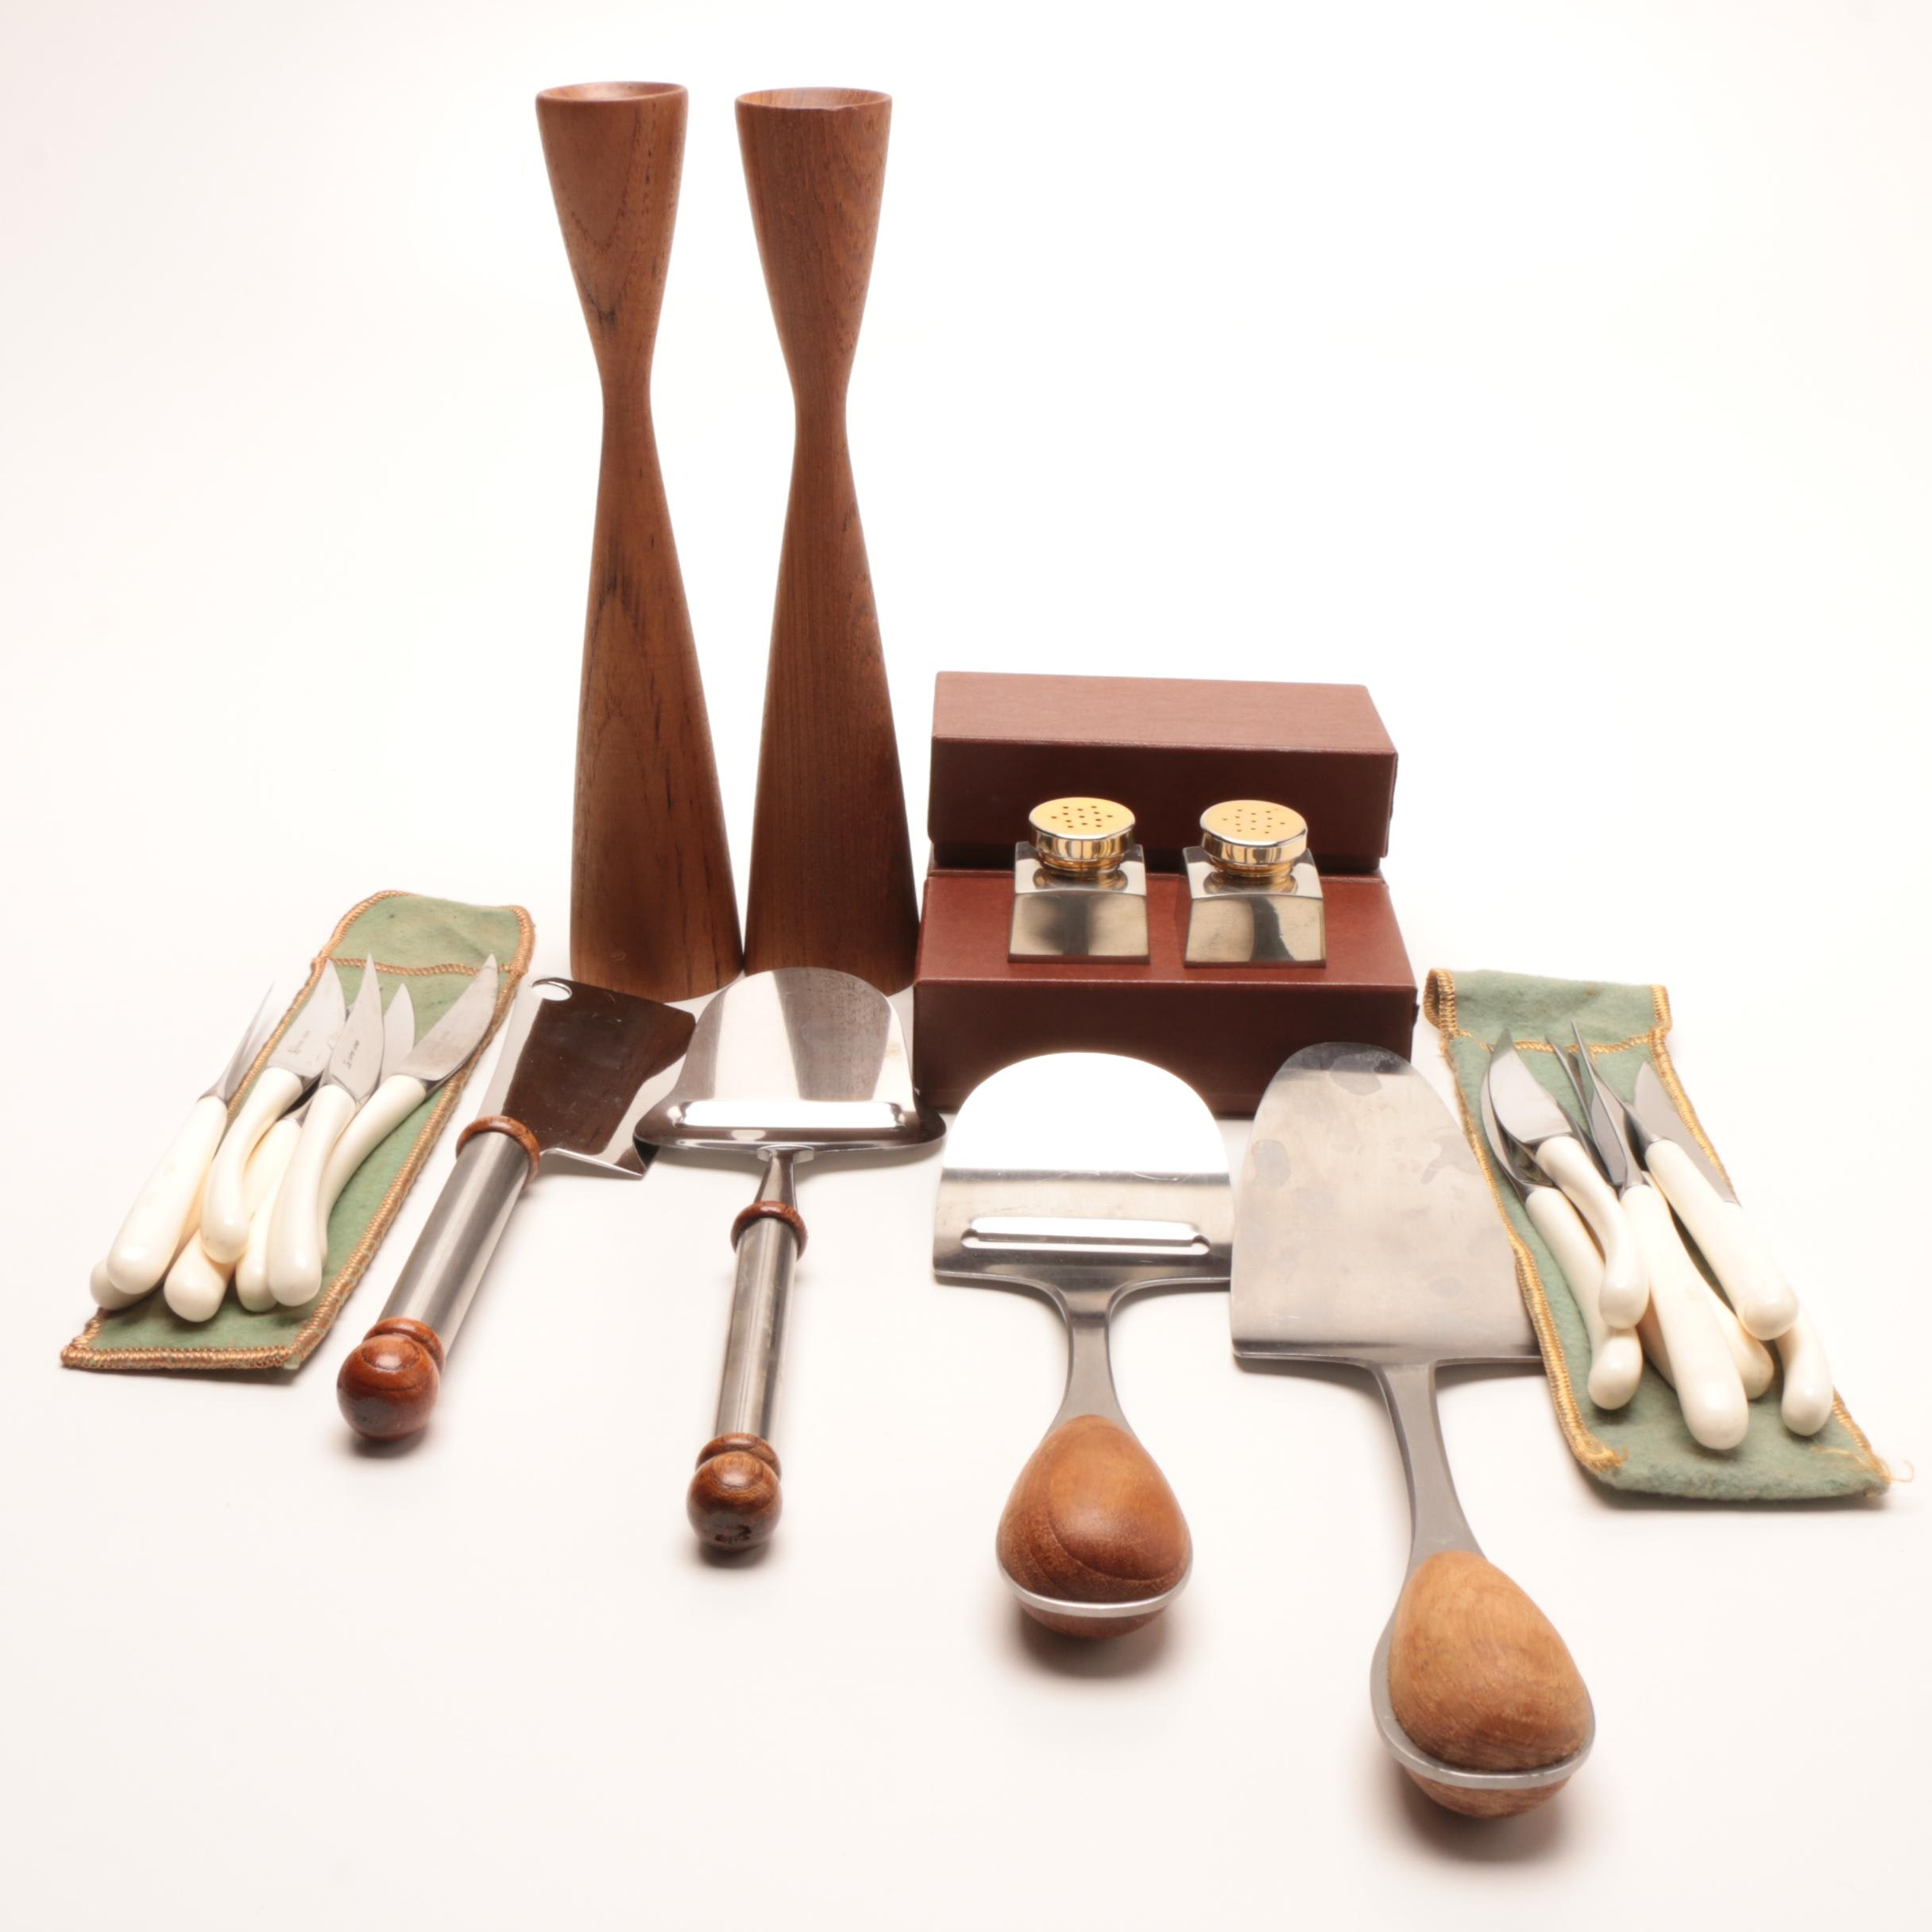 Assorted Mid Century Modern Tableware